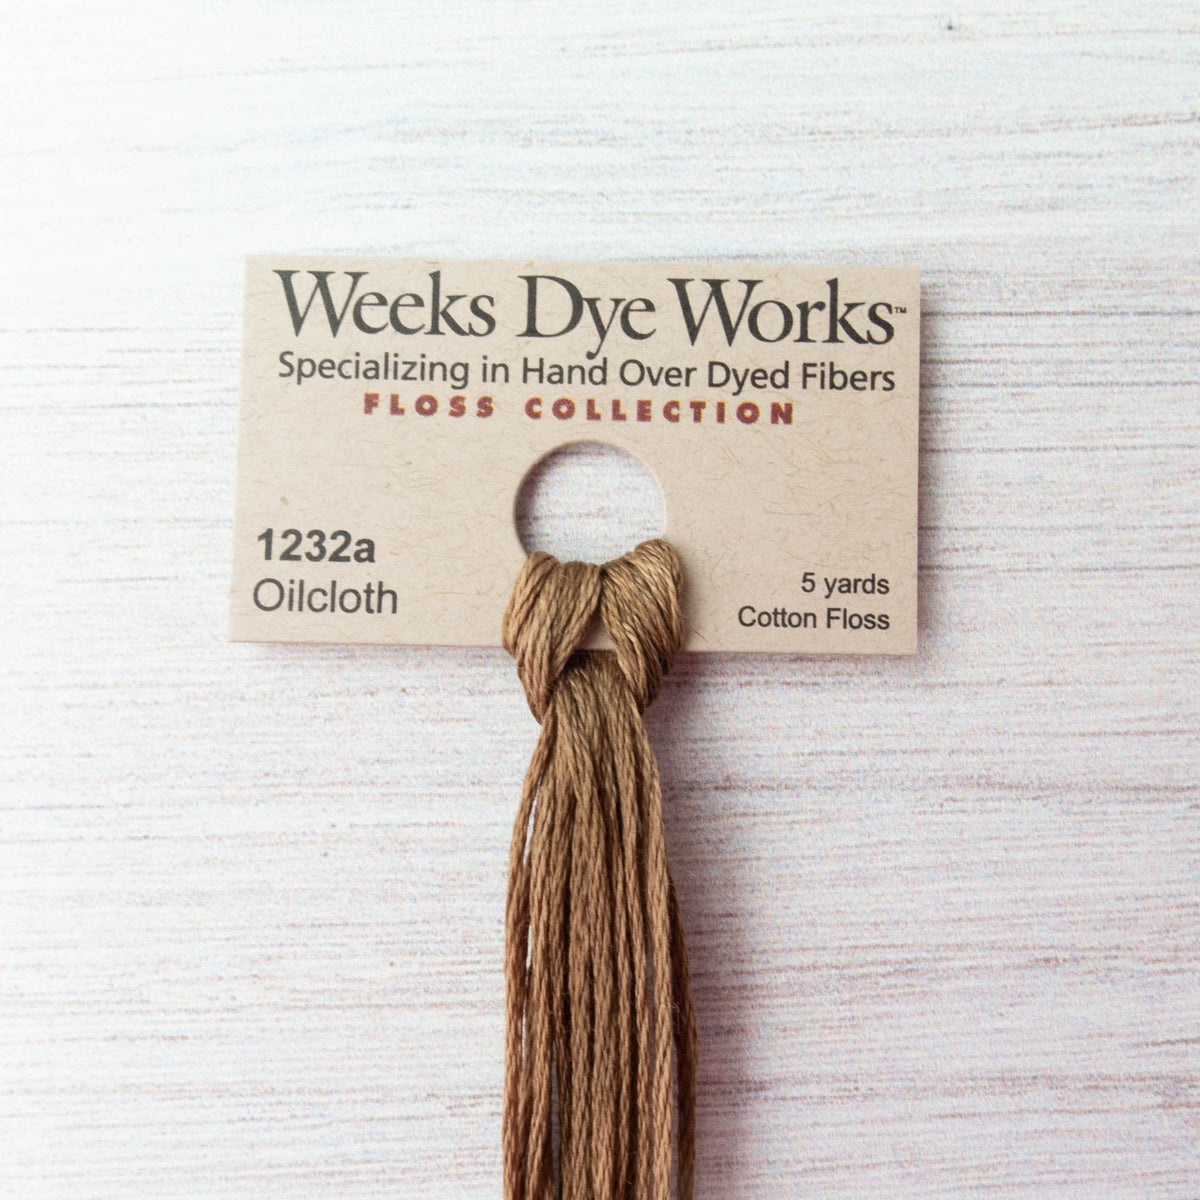 Weeks Dye Works Hand Over Dyed Embroidery Floss - Oilcloth (1232a) Floss - Snuggly Monkey